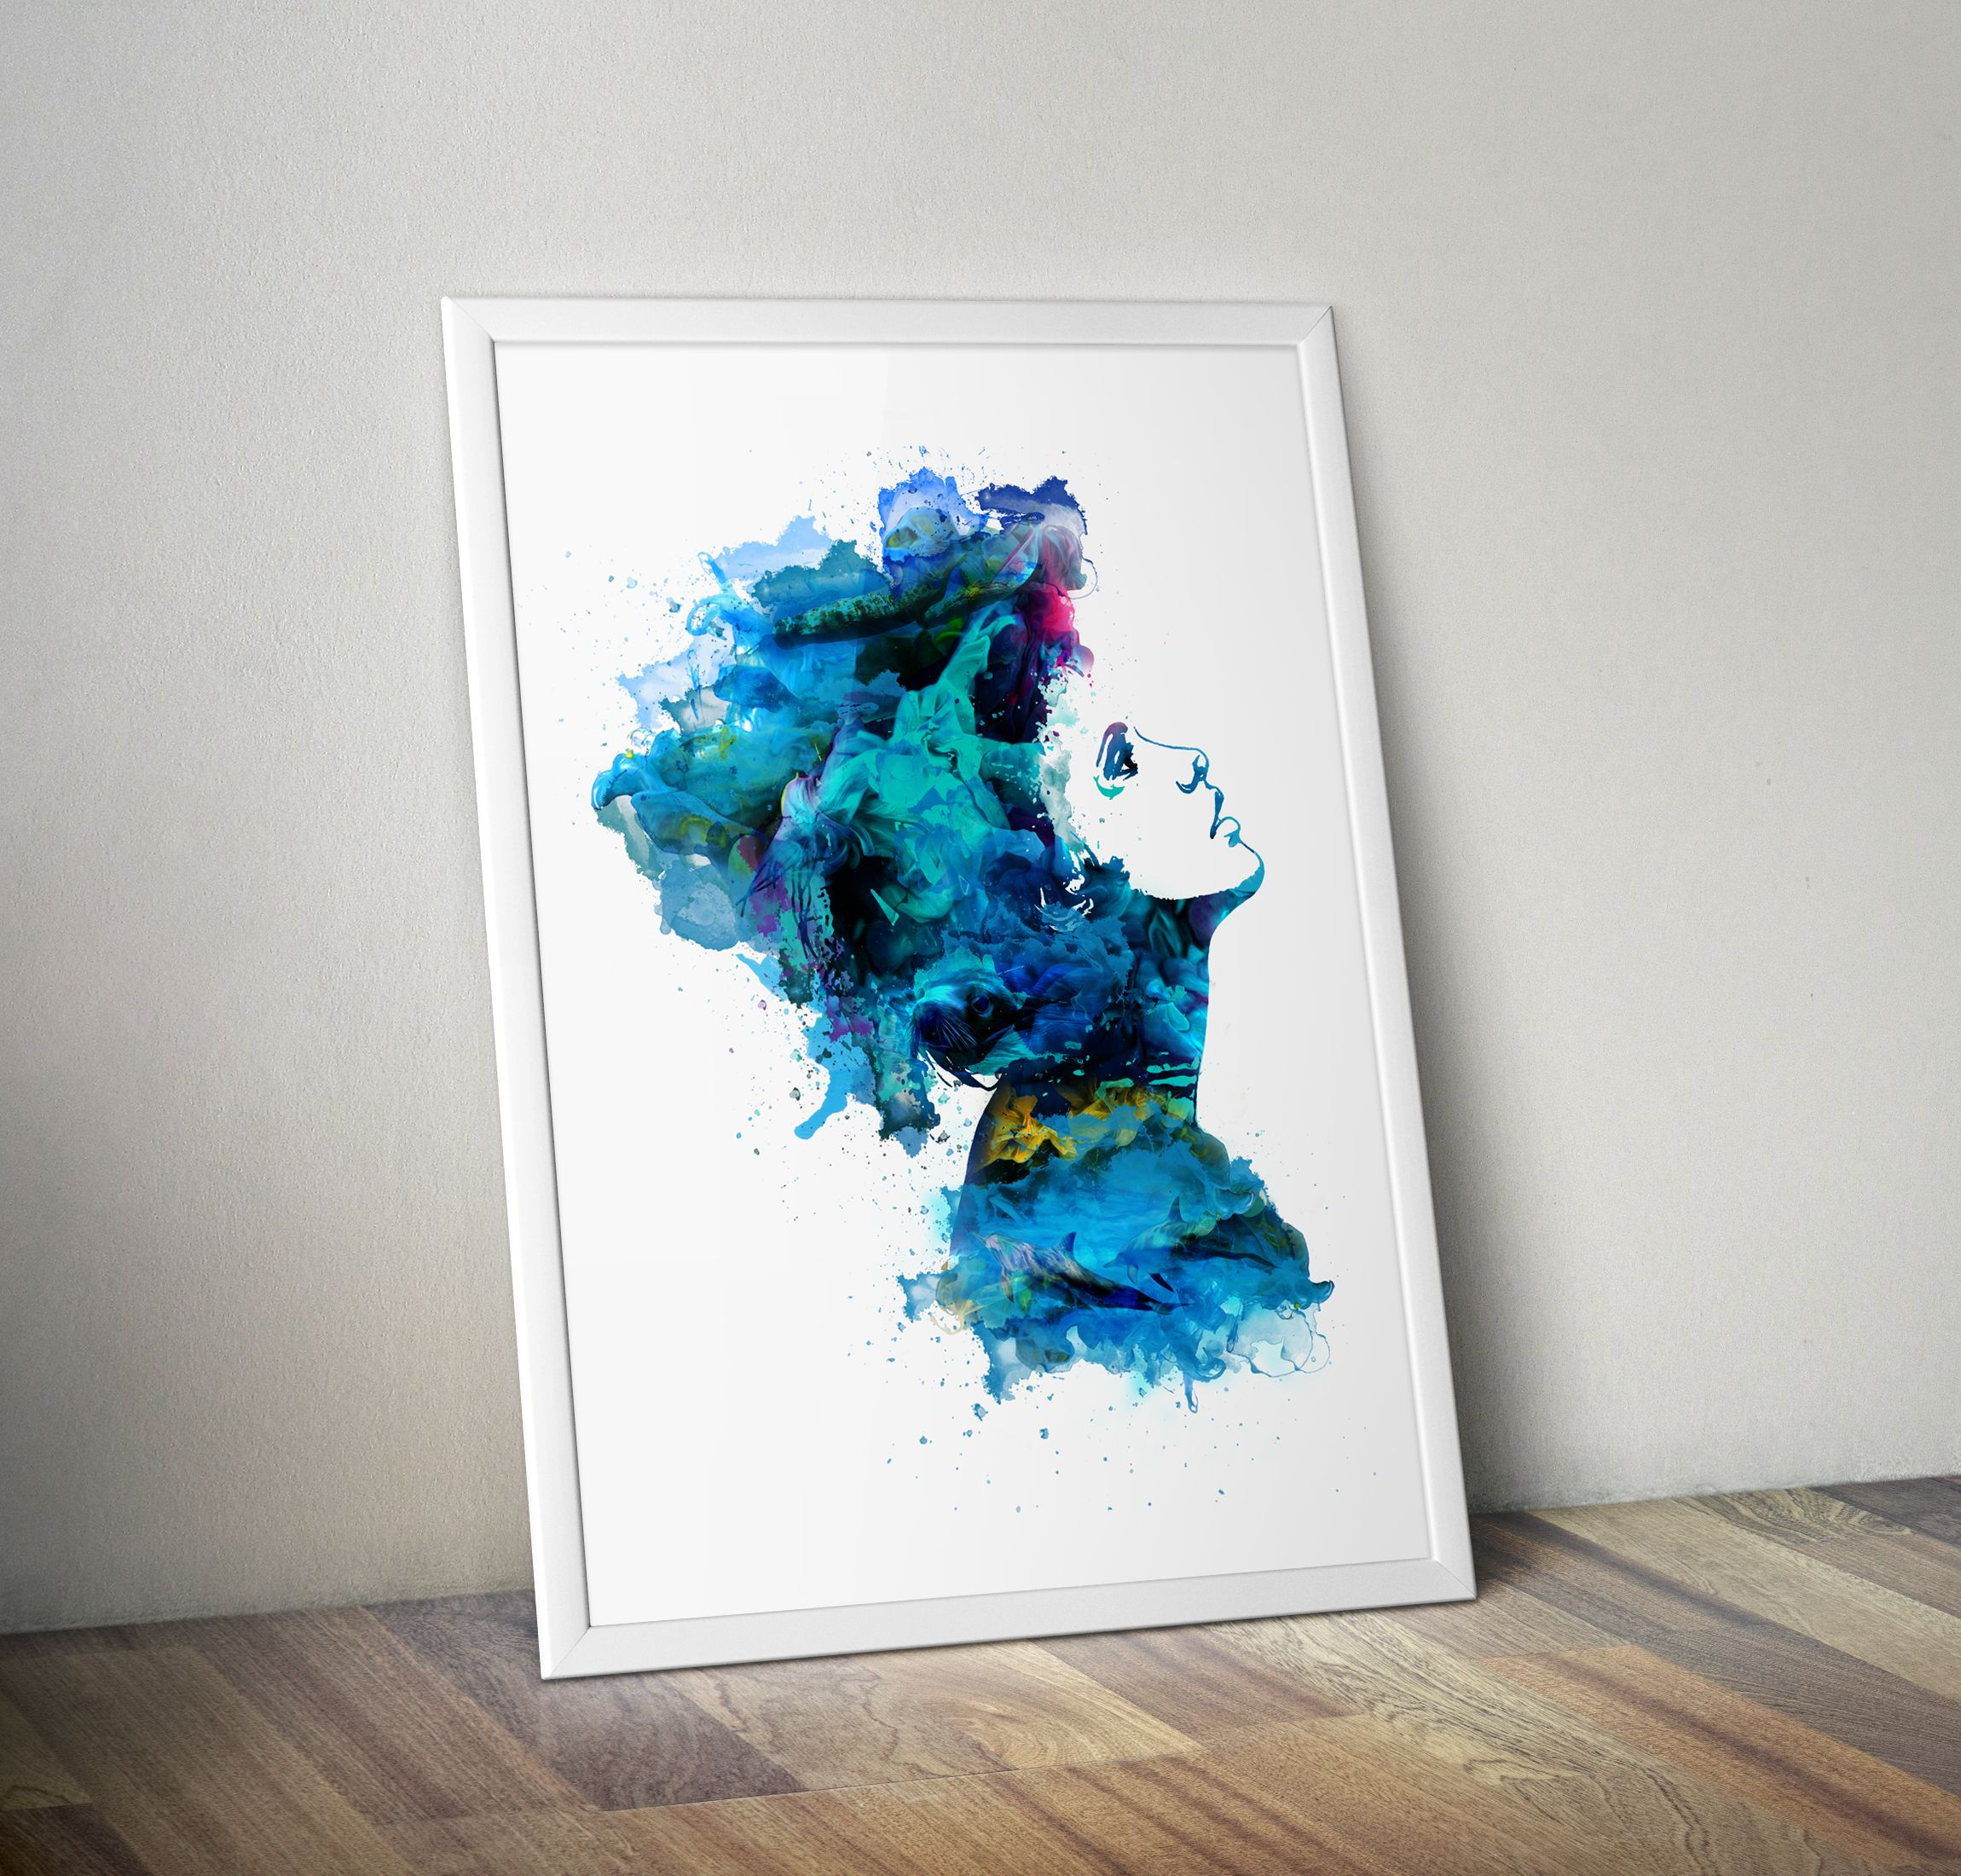 Dimitri wiles 60nz the swimmer a3 giclee print on